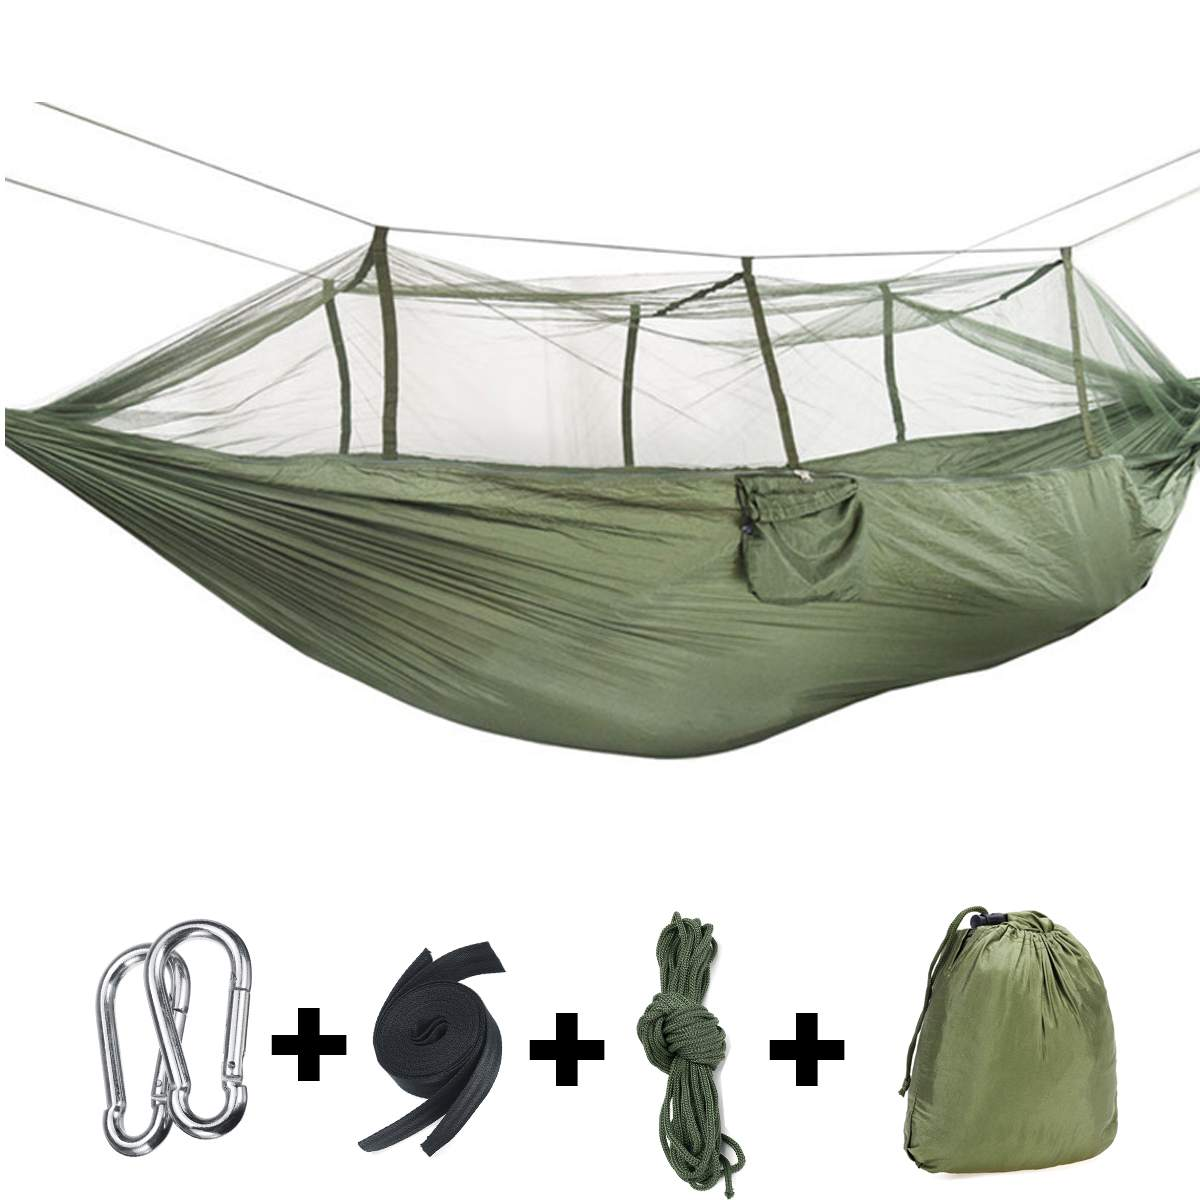 Outdoor Camping Hammocks With Mosquito Net 1-2 Person Portable Travel Camping Fabric Hanging Swing Hammocks Bed Garden Furniture